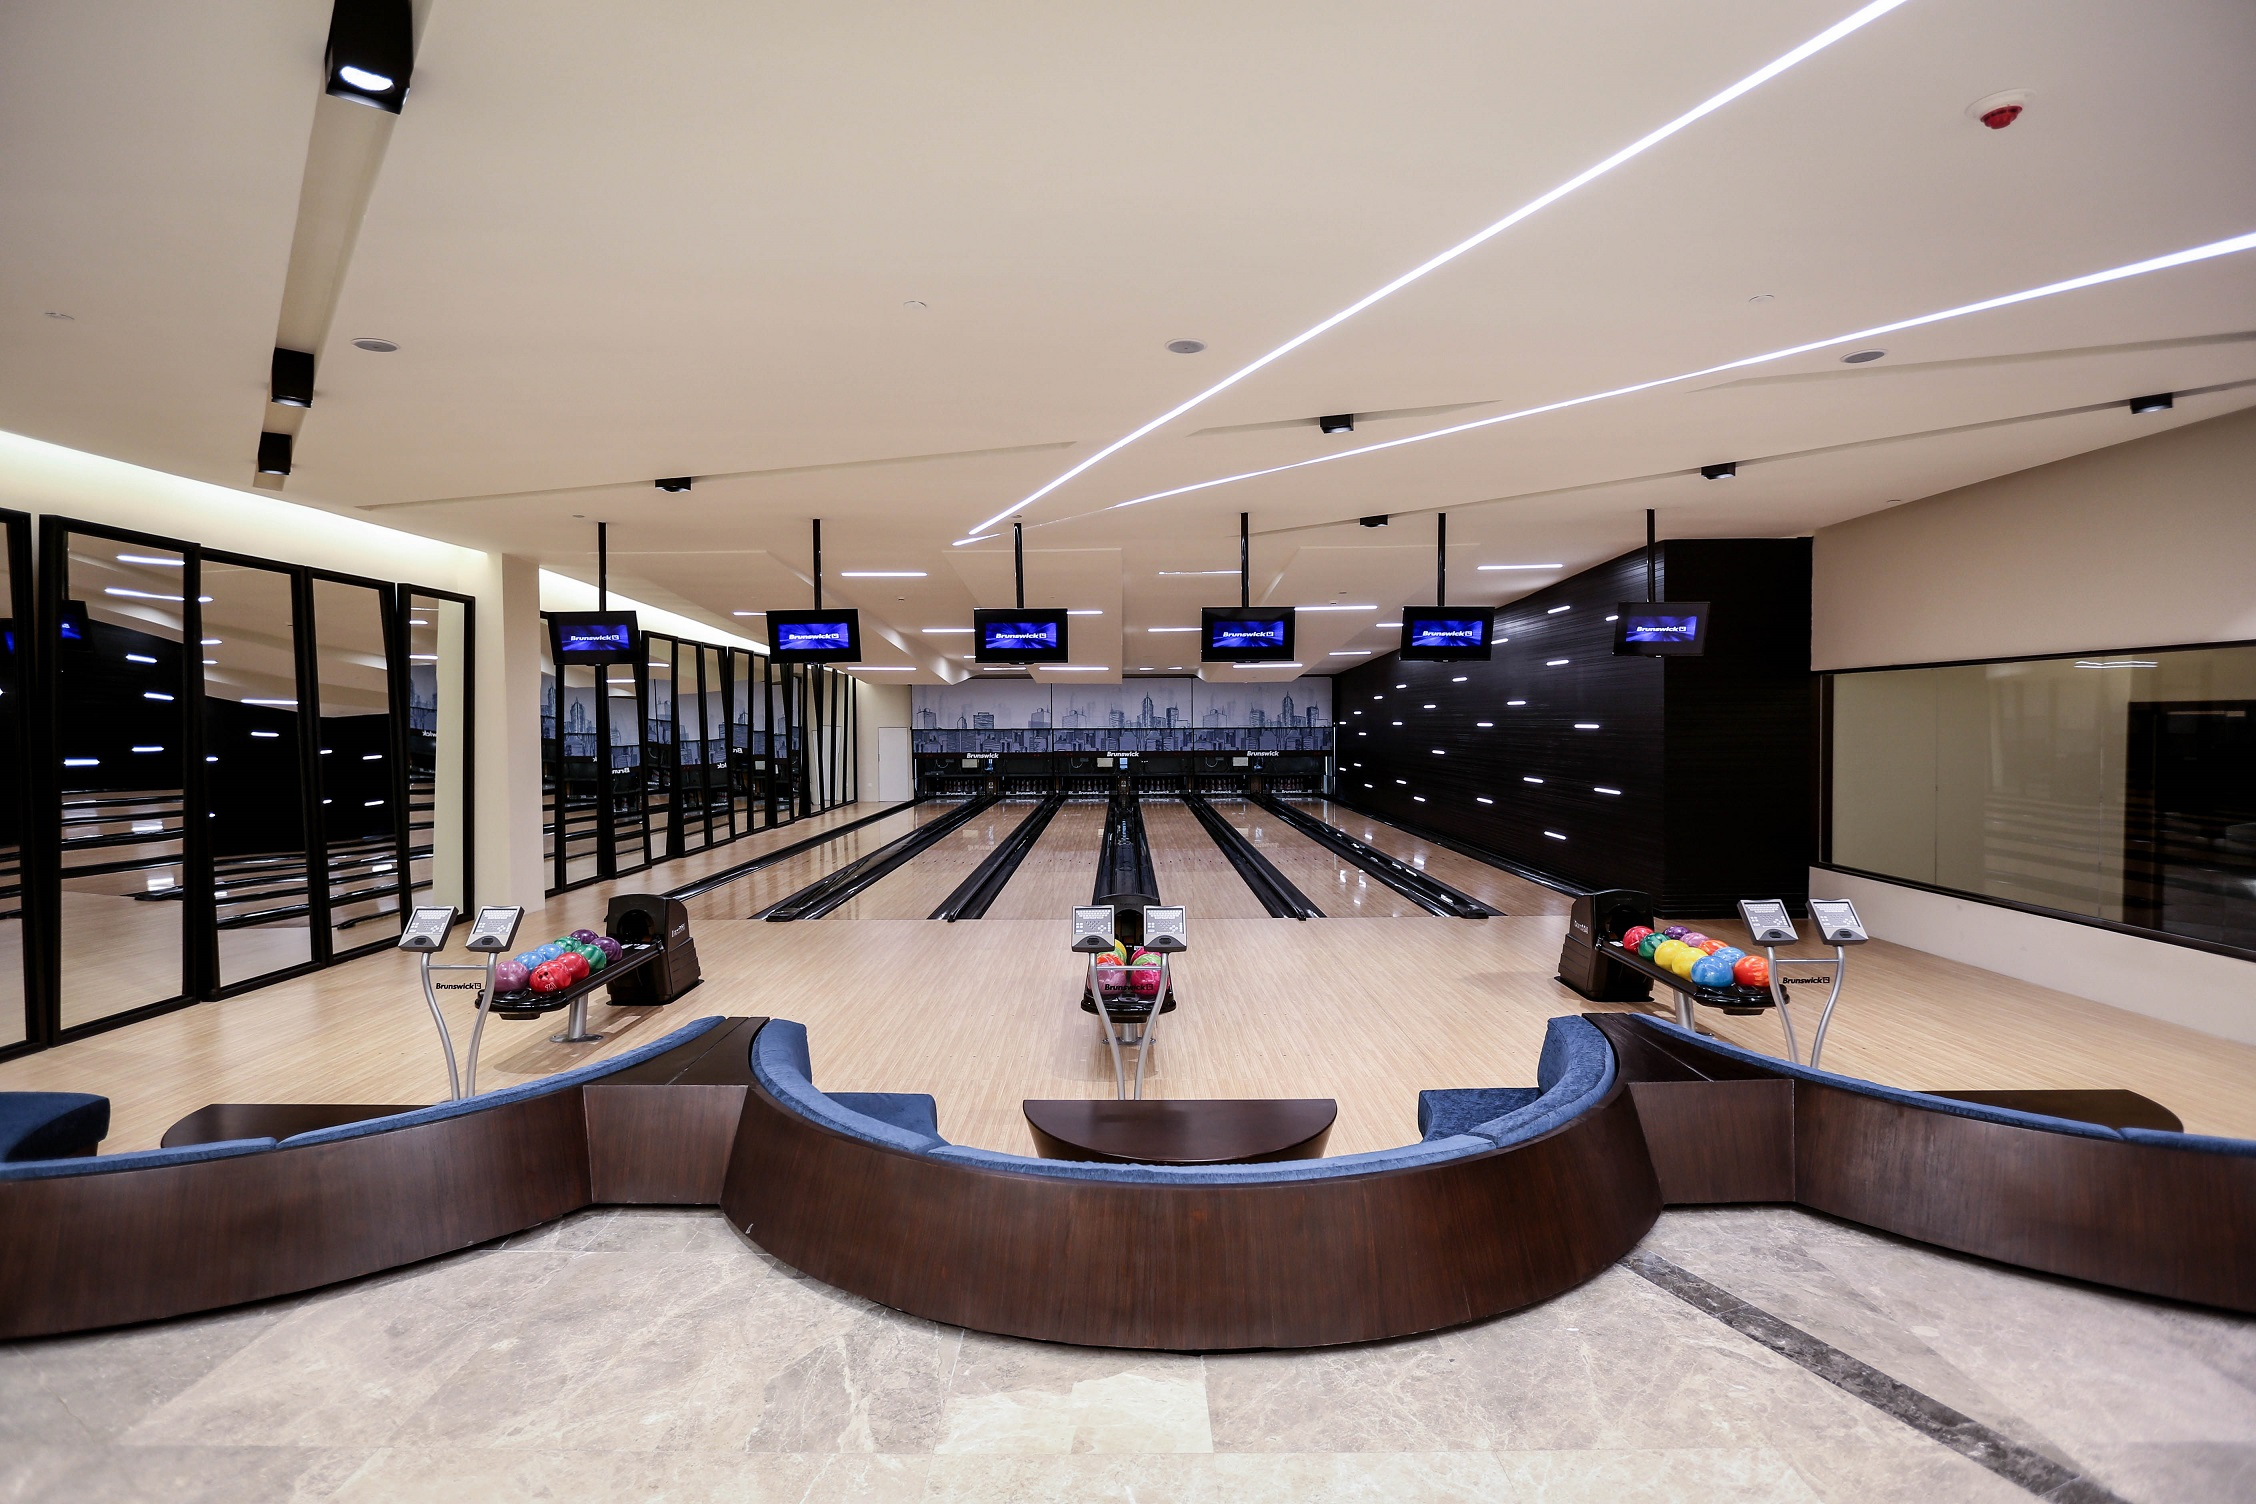 Bay La Sun Bowling Center